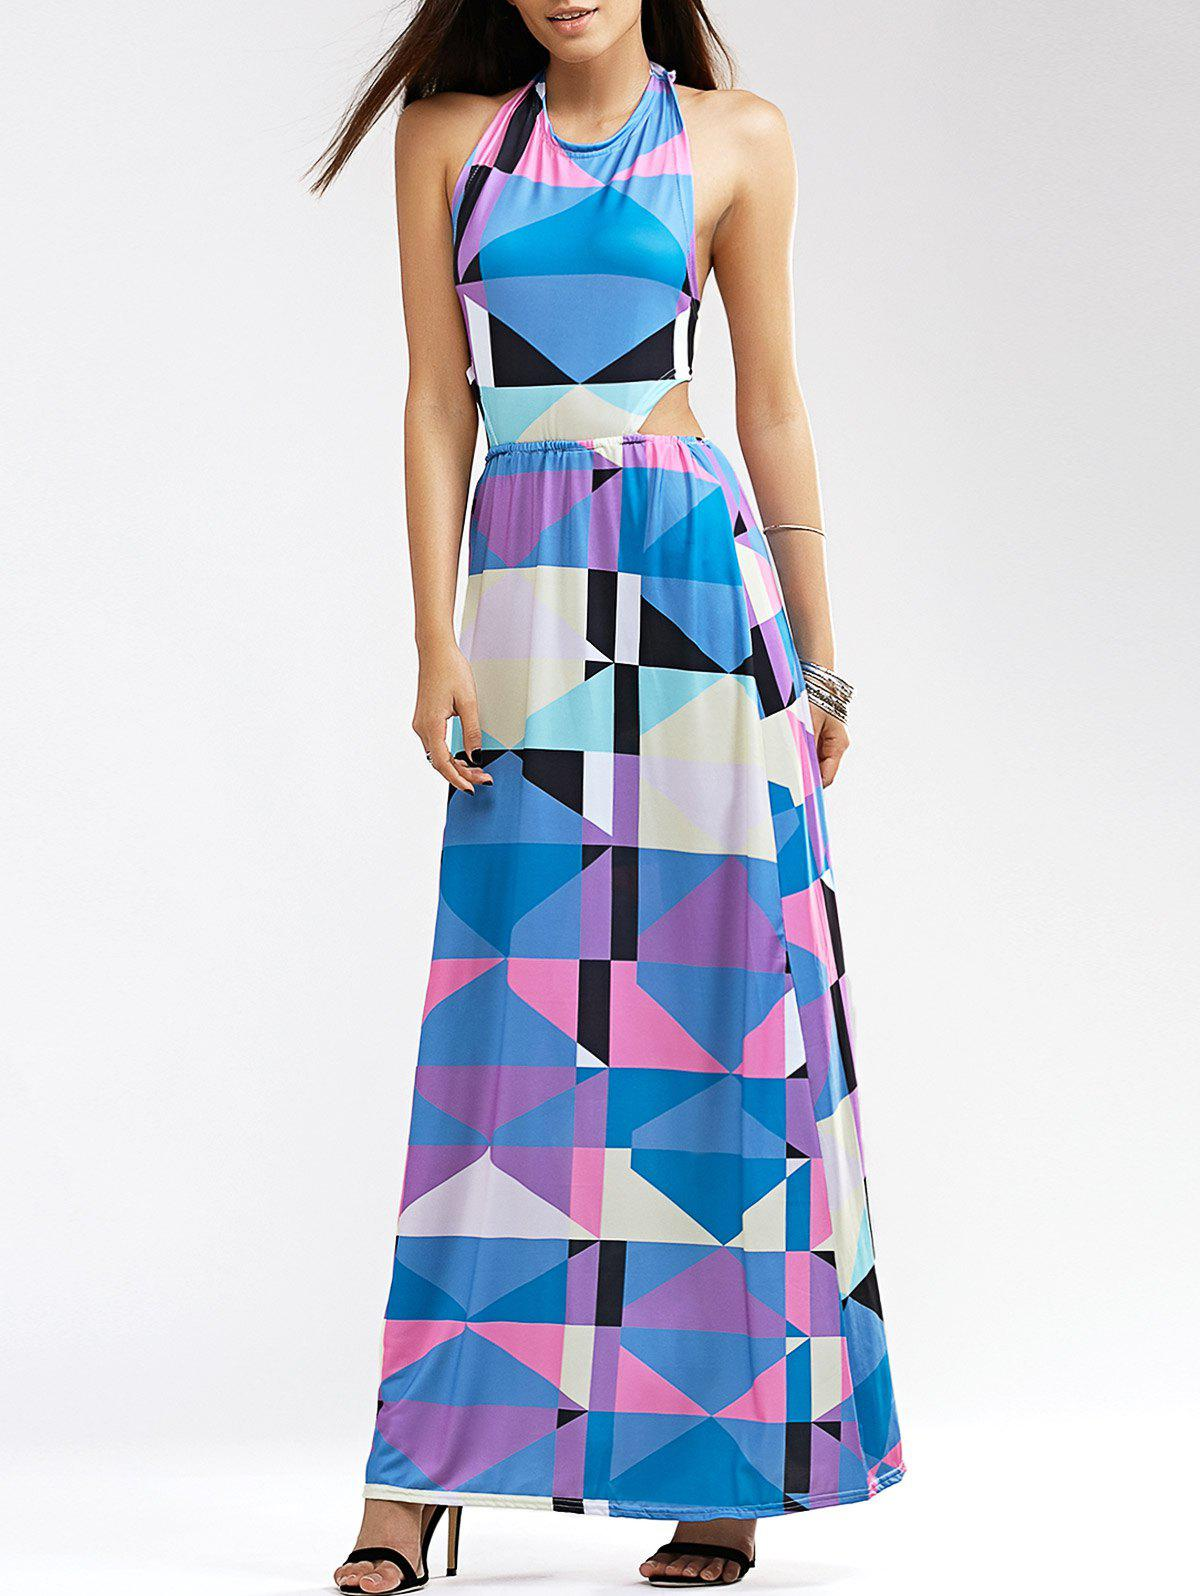 Halter Neck Bowknot Backless Brief Geometric Print Women's Dress - L COLORMIX